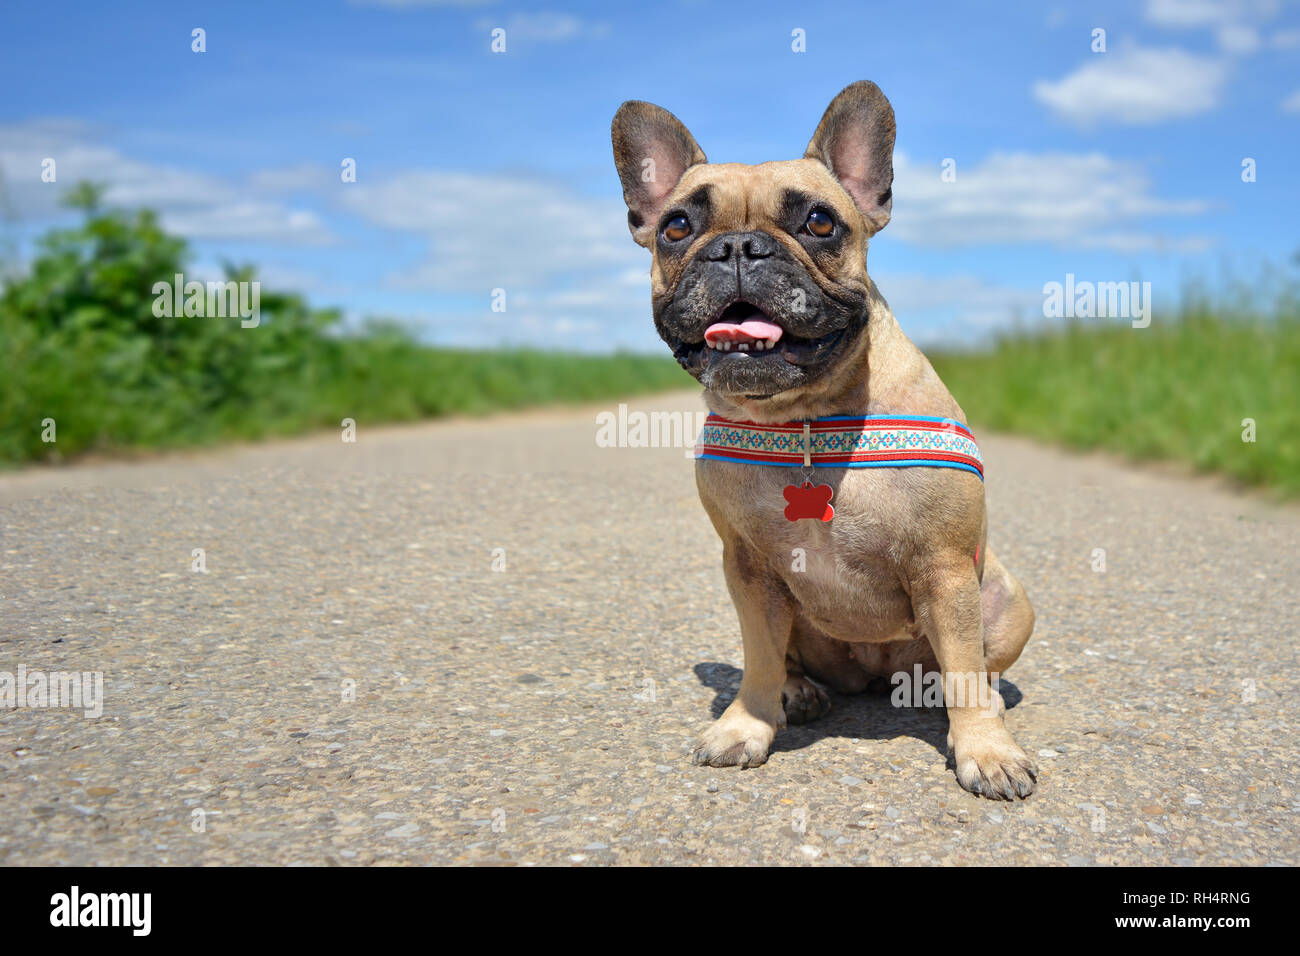 Wide angel dog photography of a cute smiling female French Bulldog sitting on a country road surrounded by fields and blue sky - Stock Image